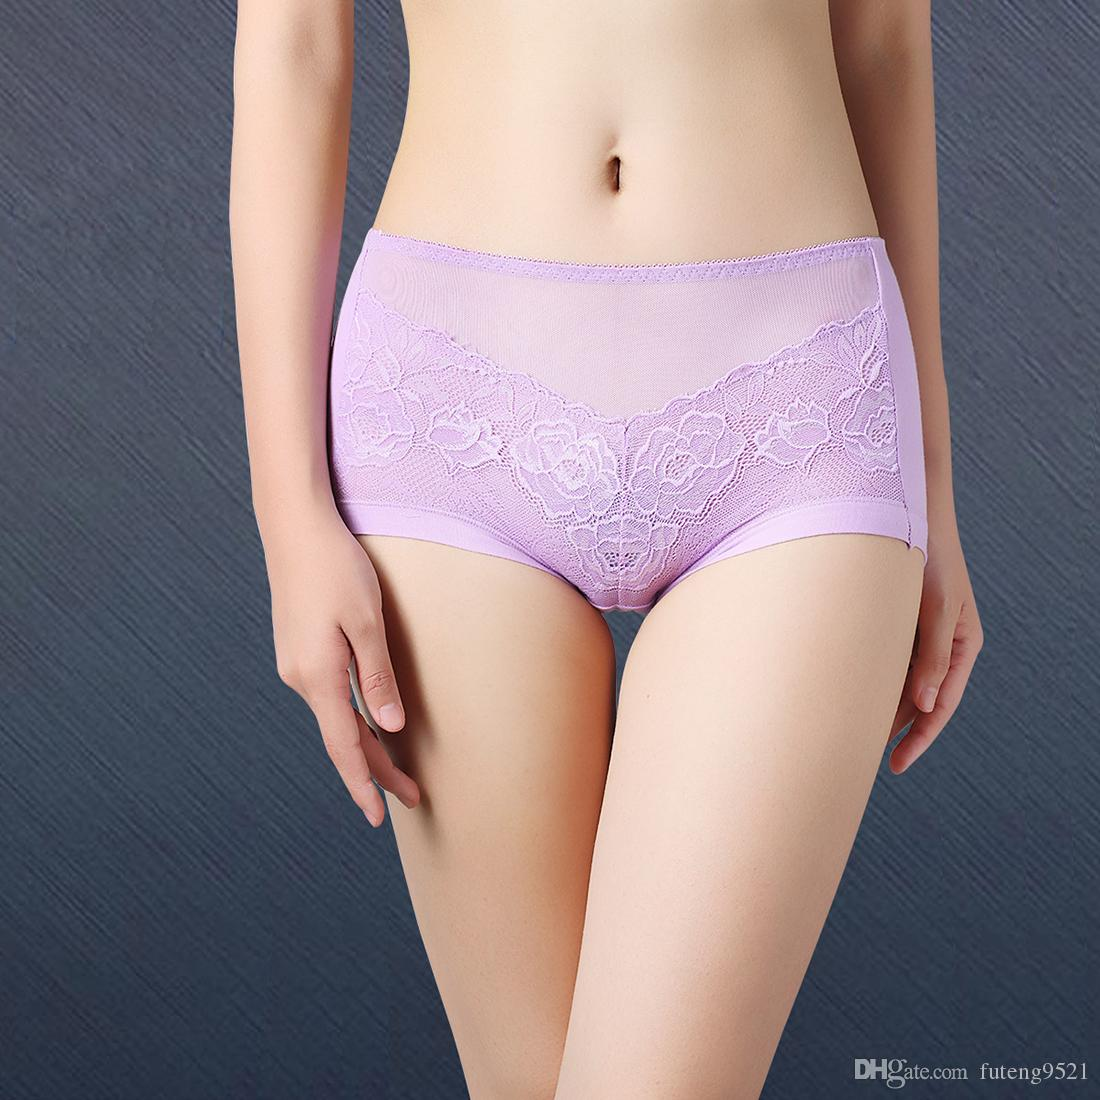 9d8ce1e46 2019 Large Size Pure Color Panties High Waist Cotton Briefs Sexy Underwear  Women Lingerie Seamless Hiphuggers For Female From Futeng9521